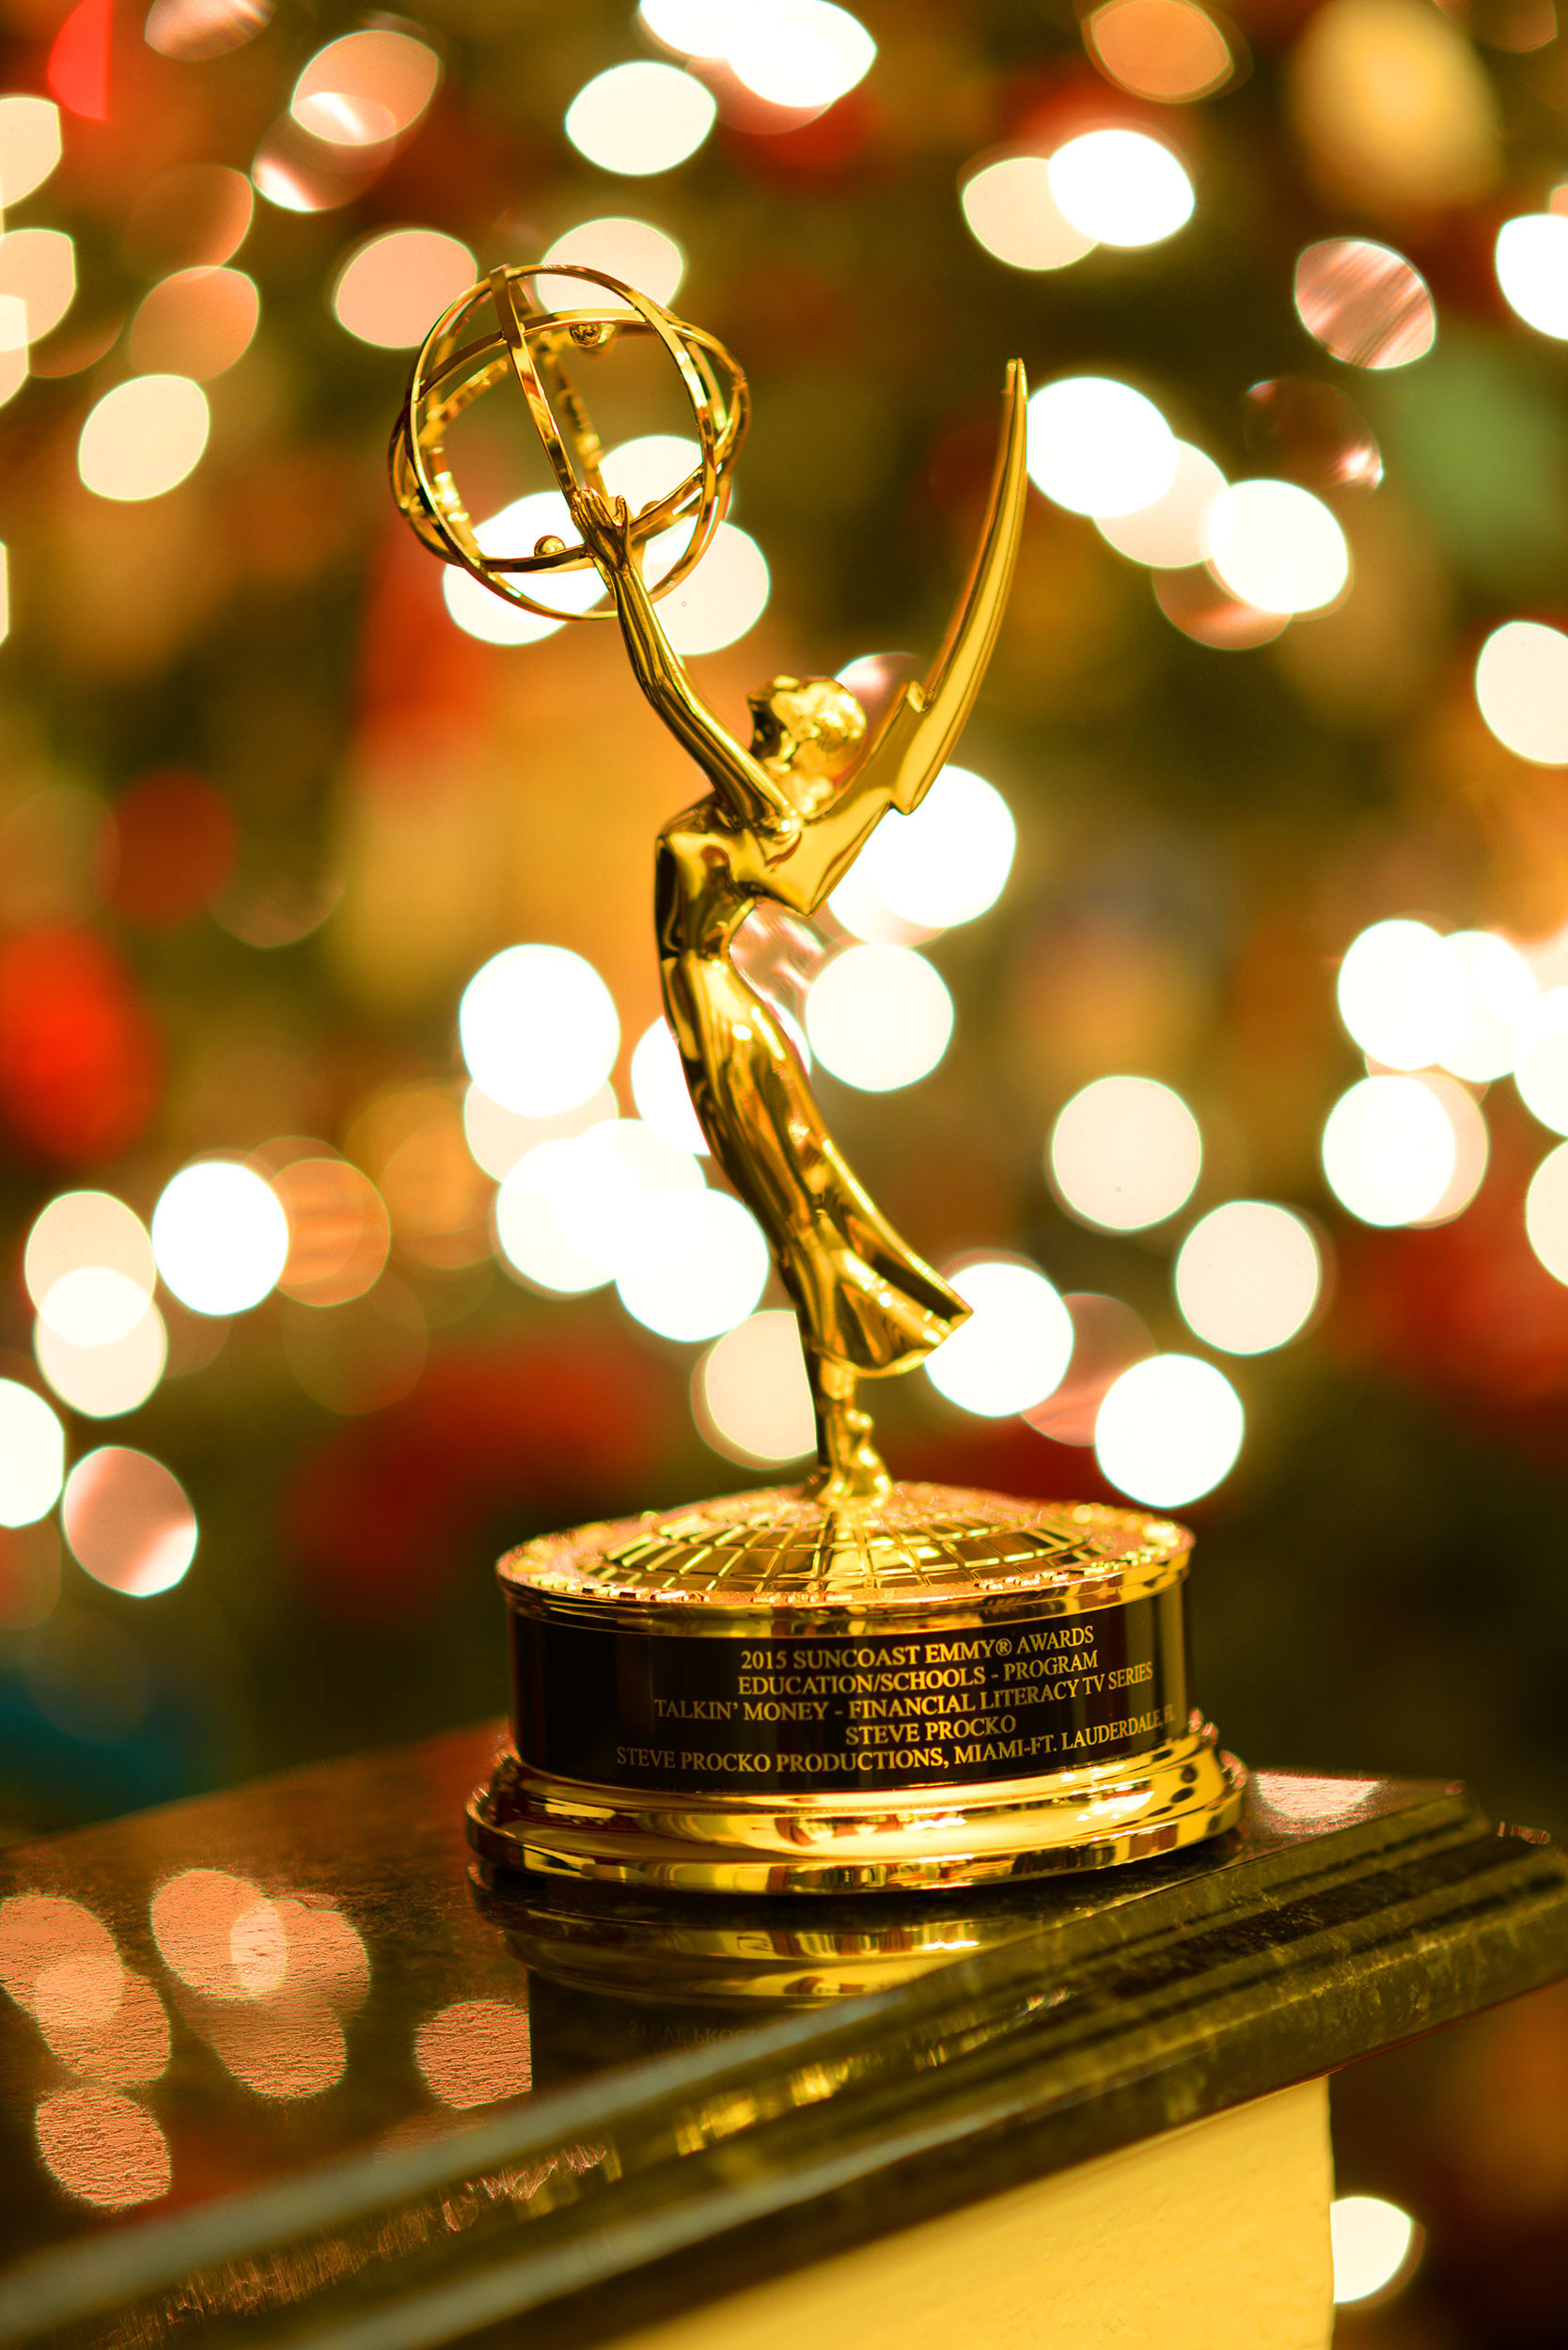 The National Academy of Television Arts and Sciences has awarded Steve Procko Productions an Emmy Award in the Educational Programming category for its Talkin' Money Financial Literacy Educational Video program.